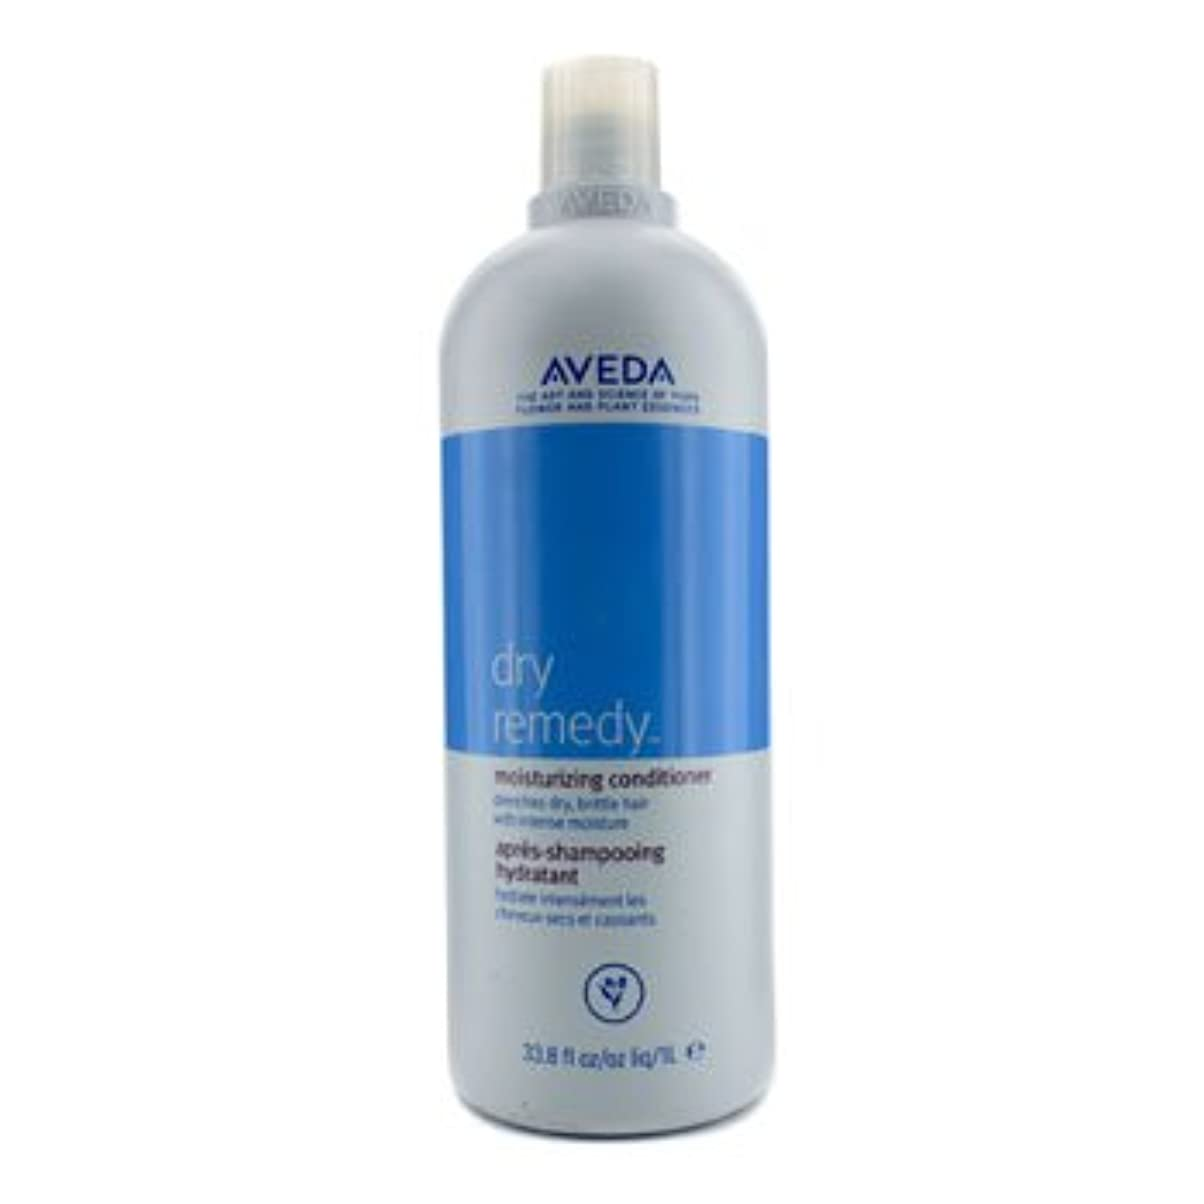 ネイティブペイン理容師[Aveda] Dry Remedy Moisturizing Conditioner - For Drenches Dry Brittle Hair (New Packaging) 1000ml/33.8oz